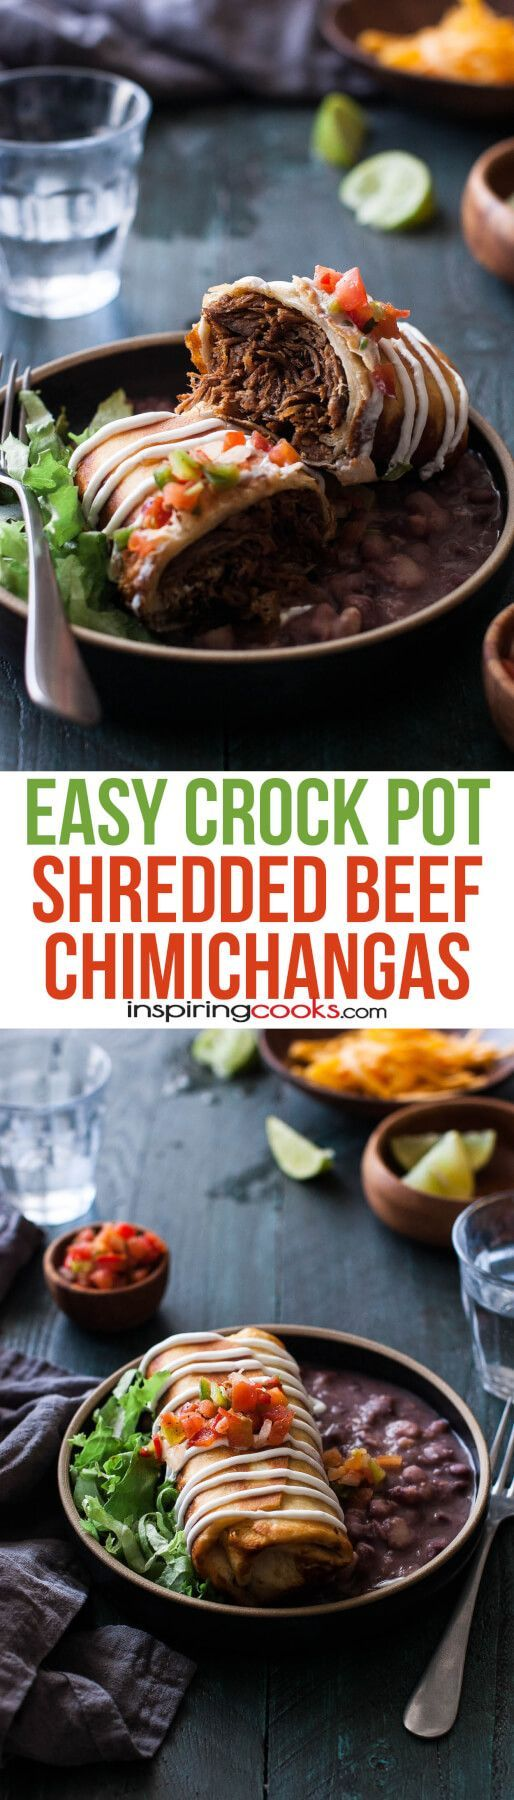 I love how easy these crock pot chimichangas are. Just throw some stew meat in the crock pot, let it cook all day, fry it in some pre-made tortillas and add some toppings. This is my new favorite recipe!